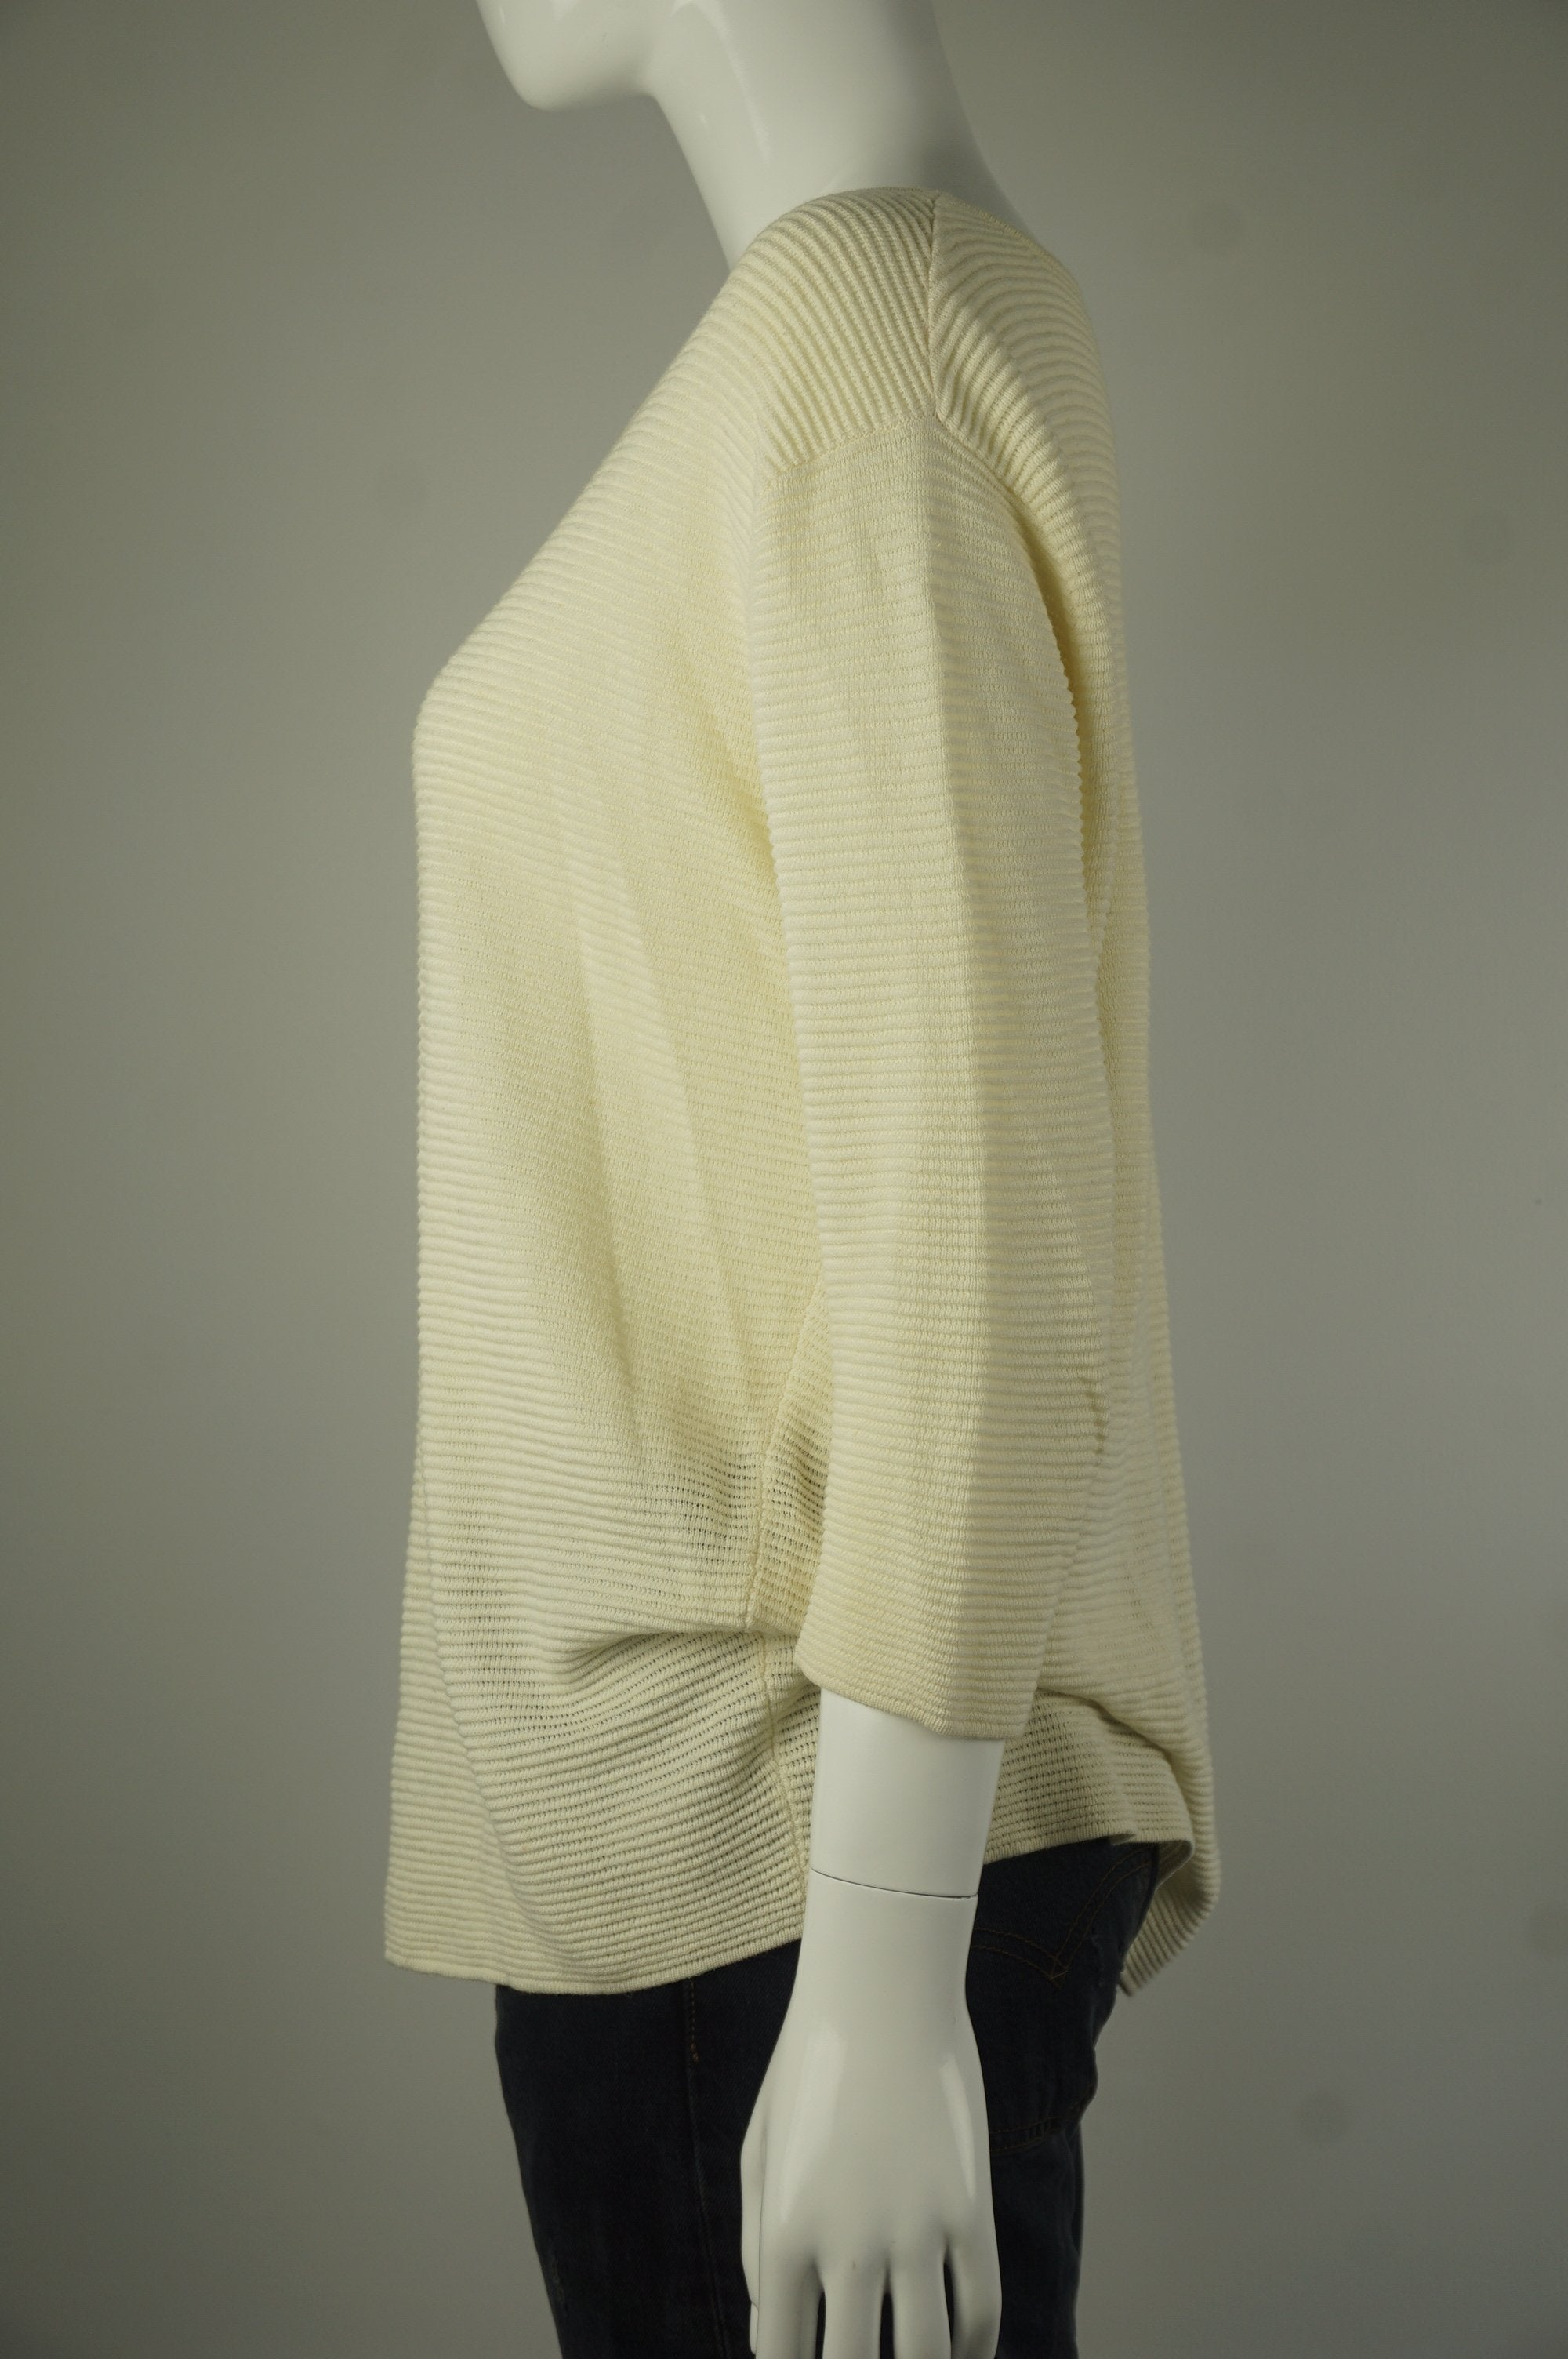 Wilfred Pullover Beige Sweater, Relazed fitting with dropped shoulders. Drapey fabric., Yellow, 68% viscose, 20% linen, 12% nylon, women's Tops, women's Yellow Tops, Wilfred women's Tops, wilfred loose sweater, arizia women's loose sweater, women's sweater, arizia women's pullover sweater